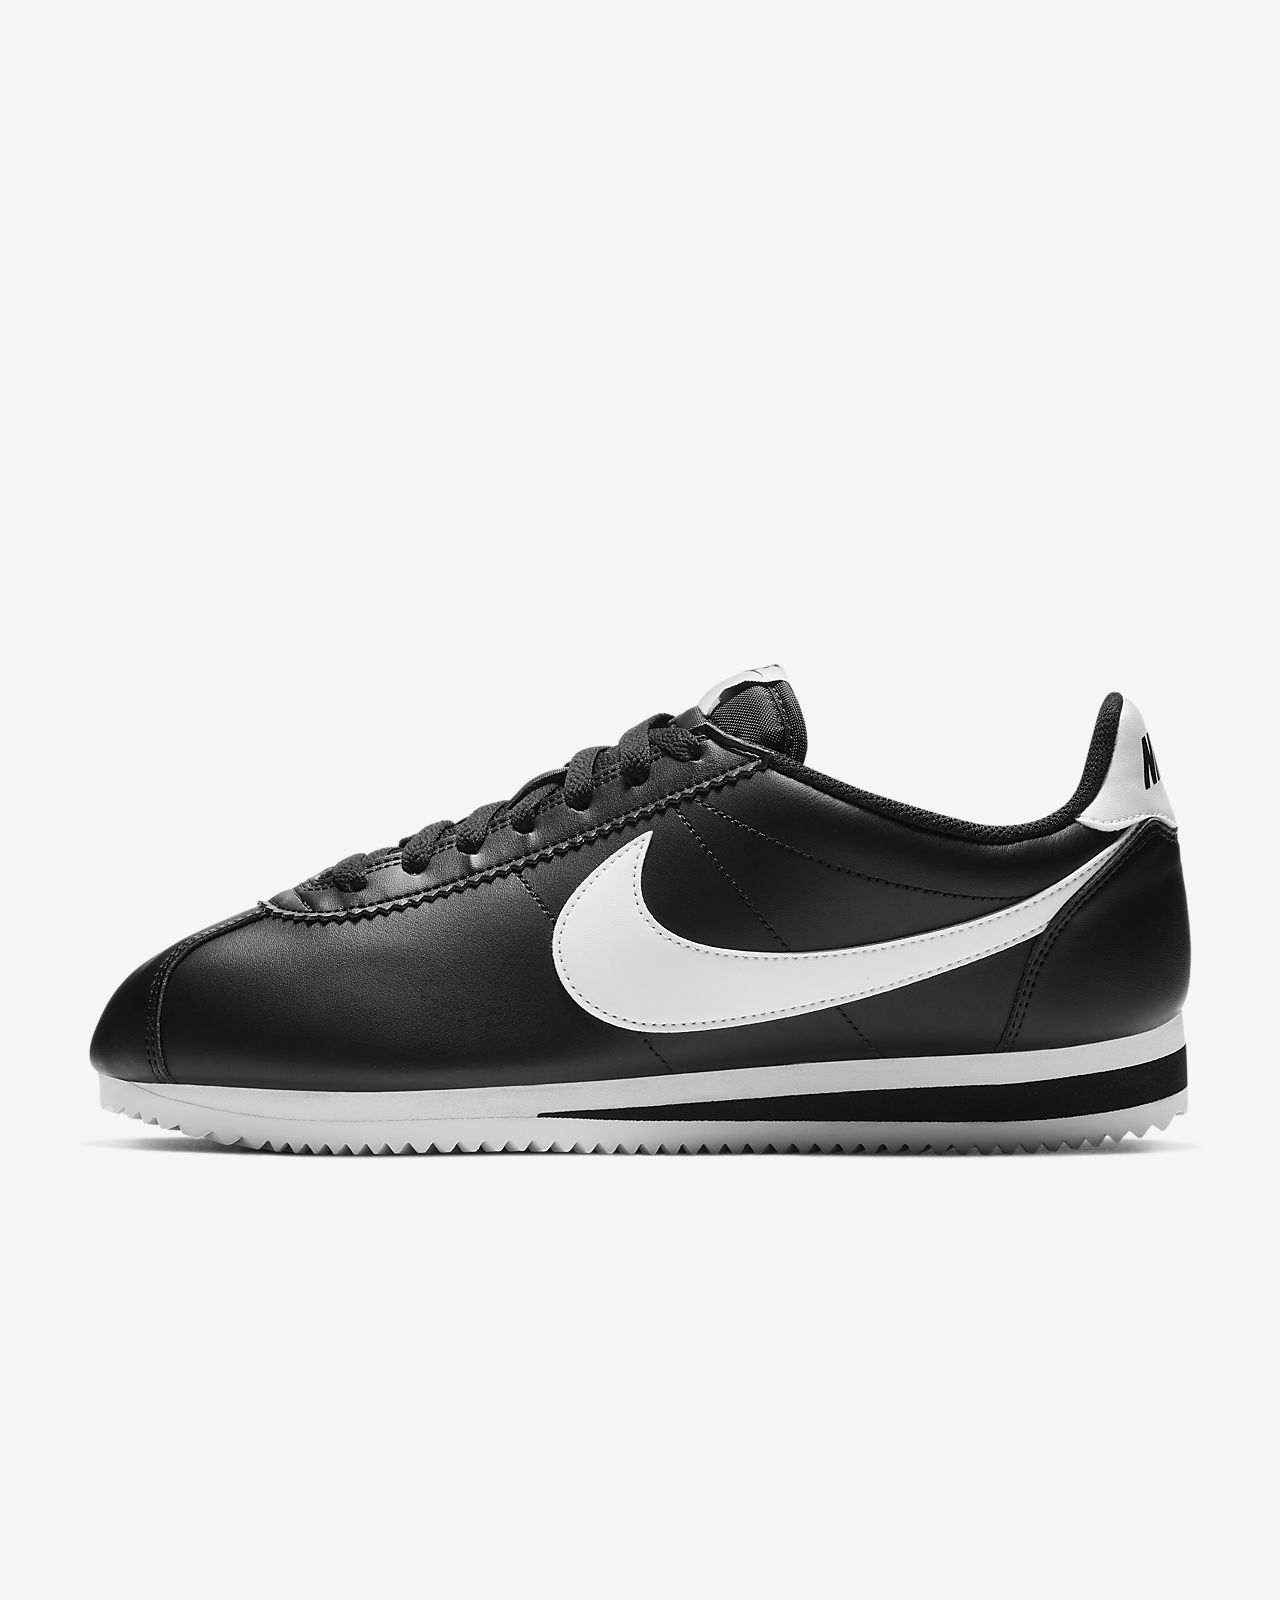 the latest bce52 5caa6 ... Nike Classic Cortez Womens Shoe